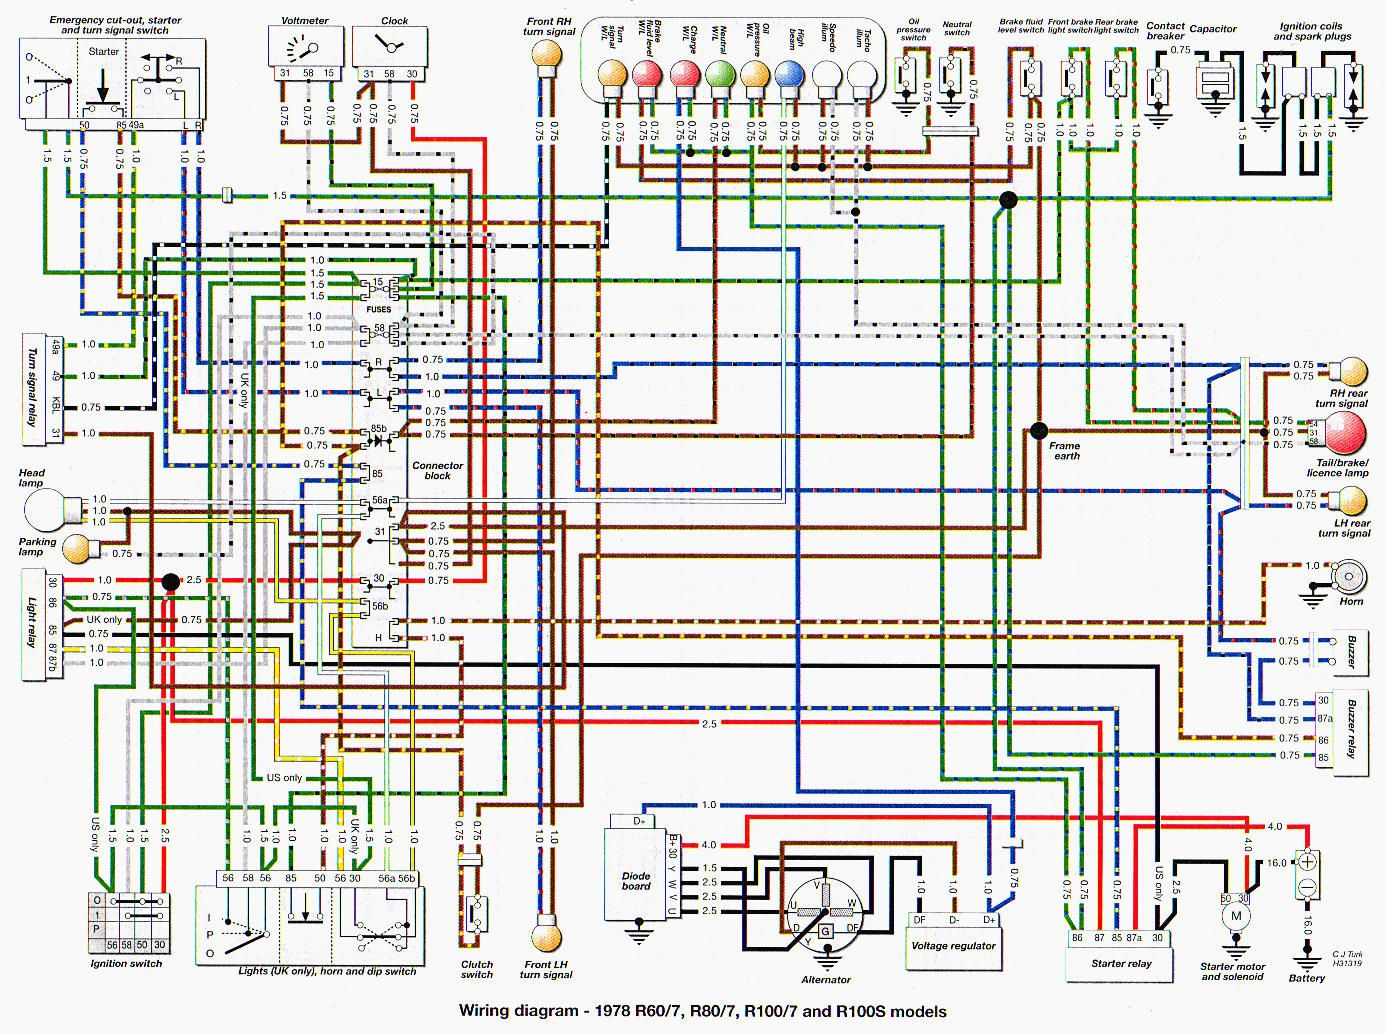 d603c7286ef8844636f01526f9fe054e bmw r100 wiring diagram bmw r75 6 wiring diagram \u2022 wiring diagrams 1976 bmw 2002 wiring harness at soozxer.org